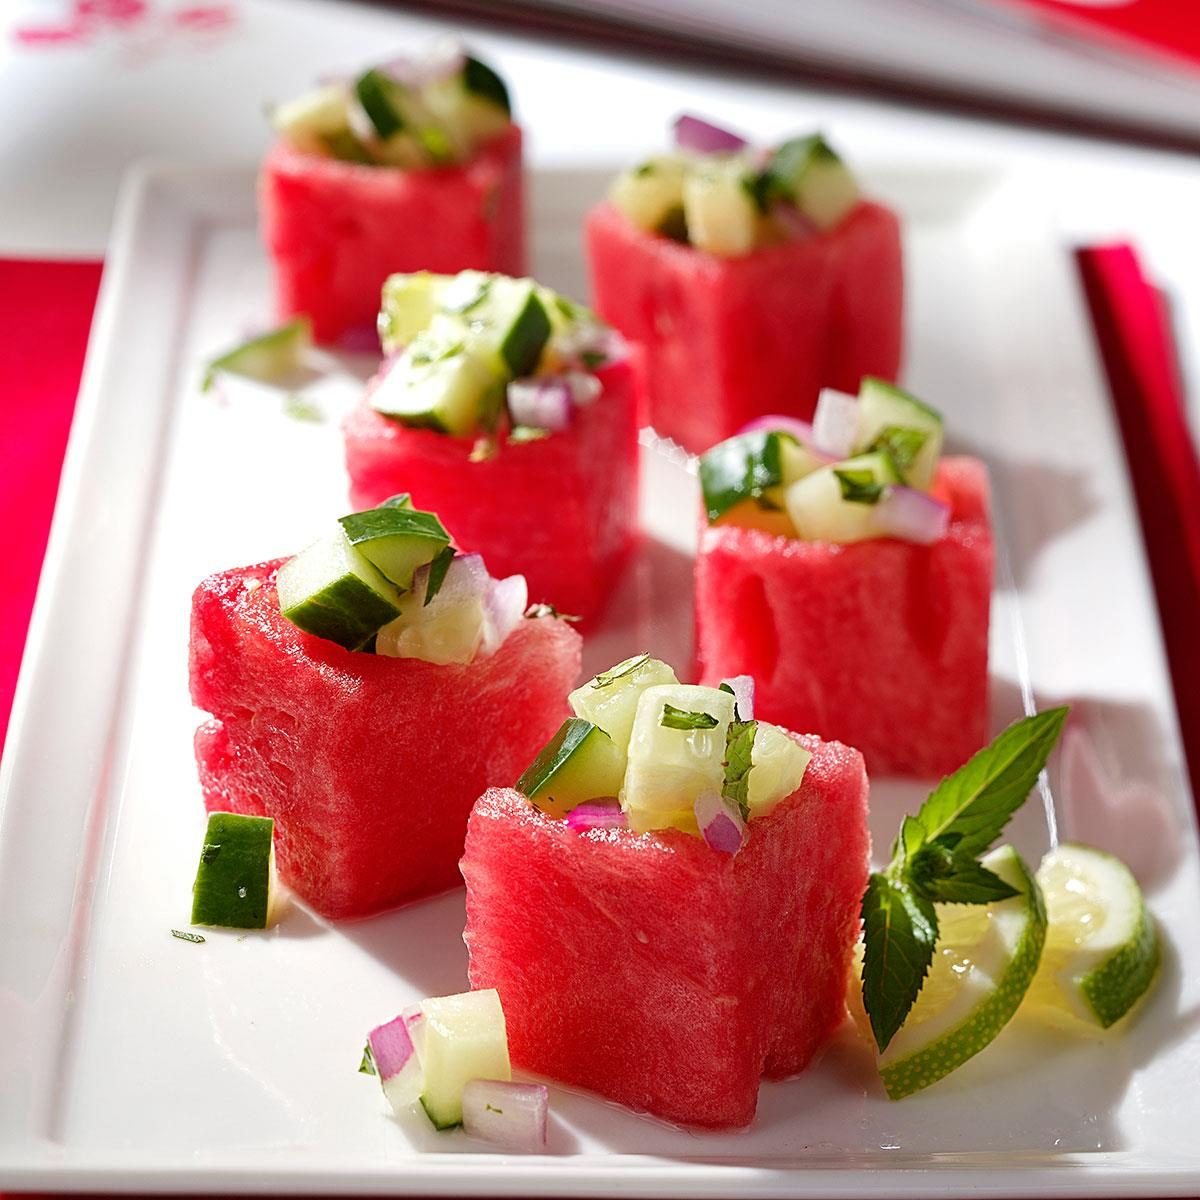 Watermelon cups recipe taste of home for Appetizers to make at home